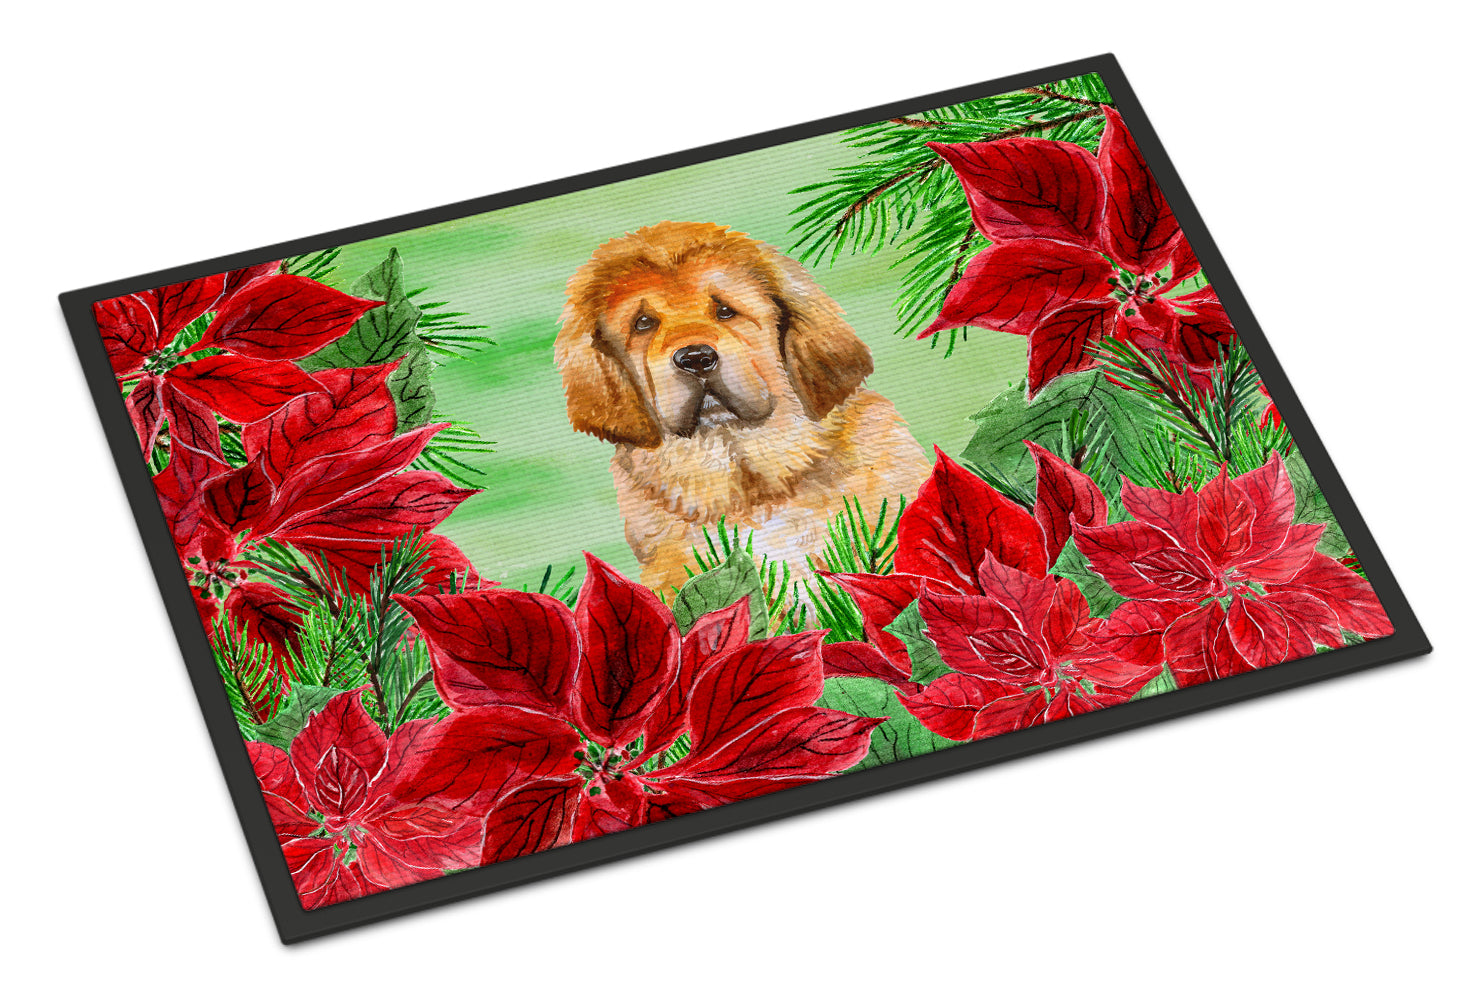 Tibetan Mastiff Poinsettas Indoor or Outdoor Mat 18x27 CK1368MAT by Caroline's Treasures